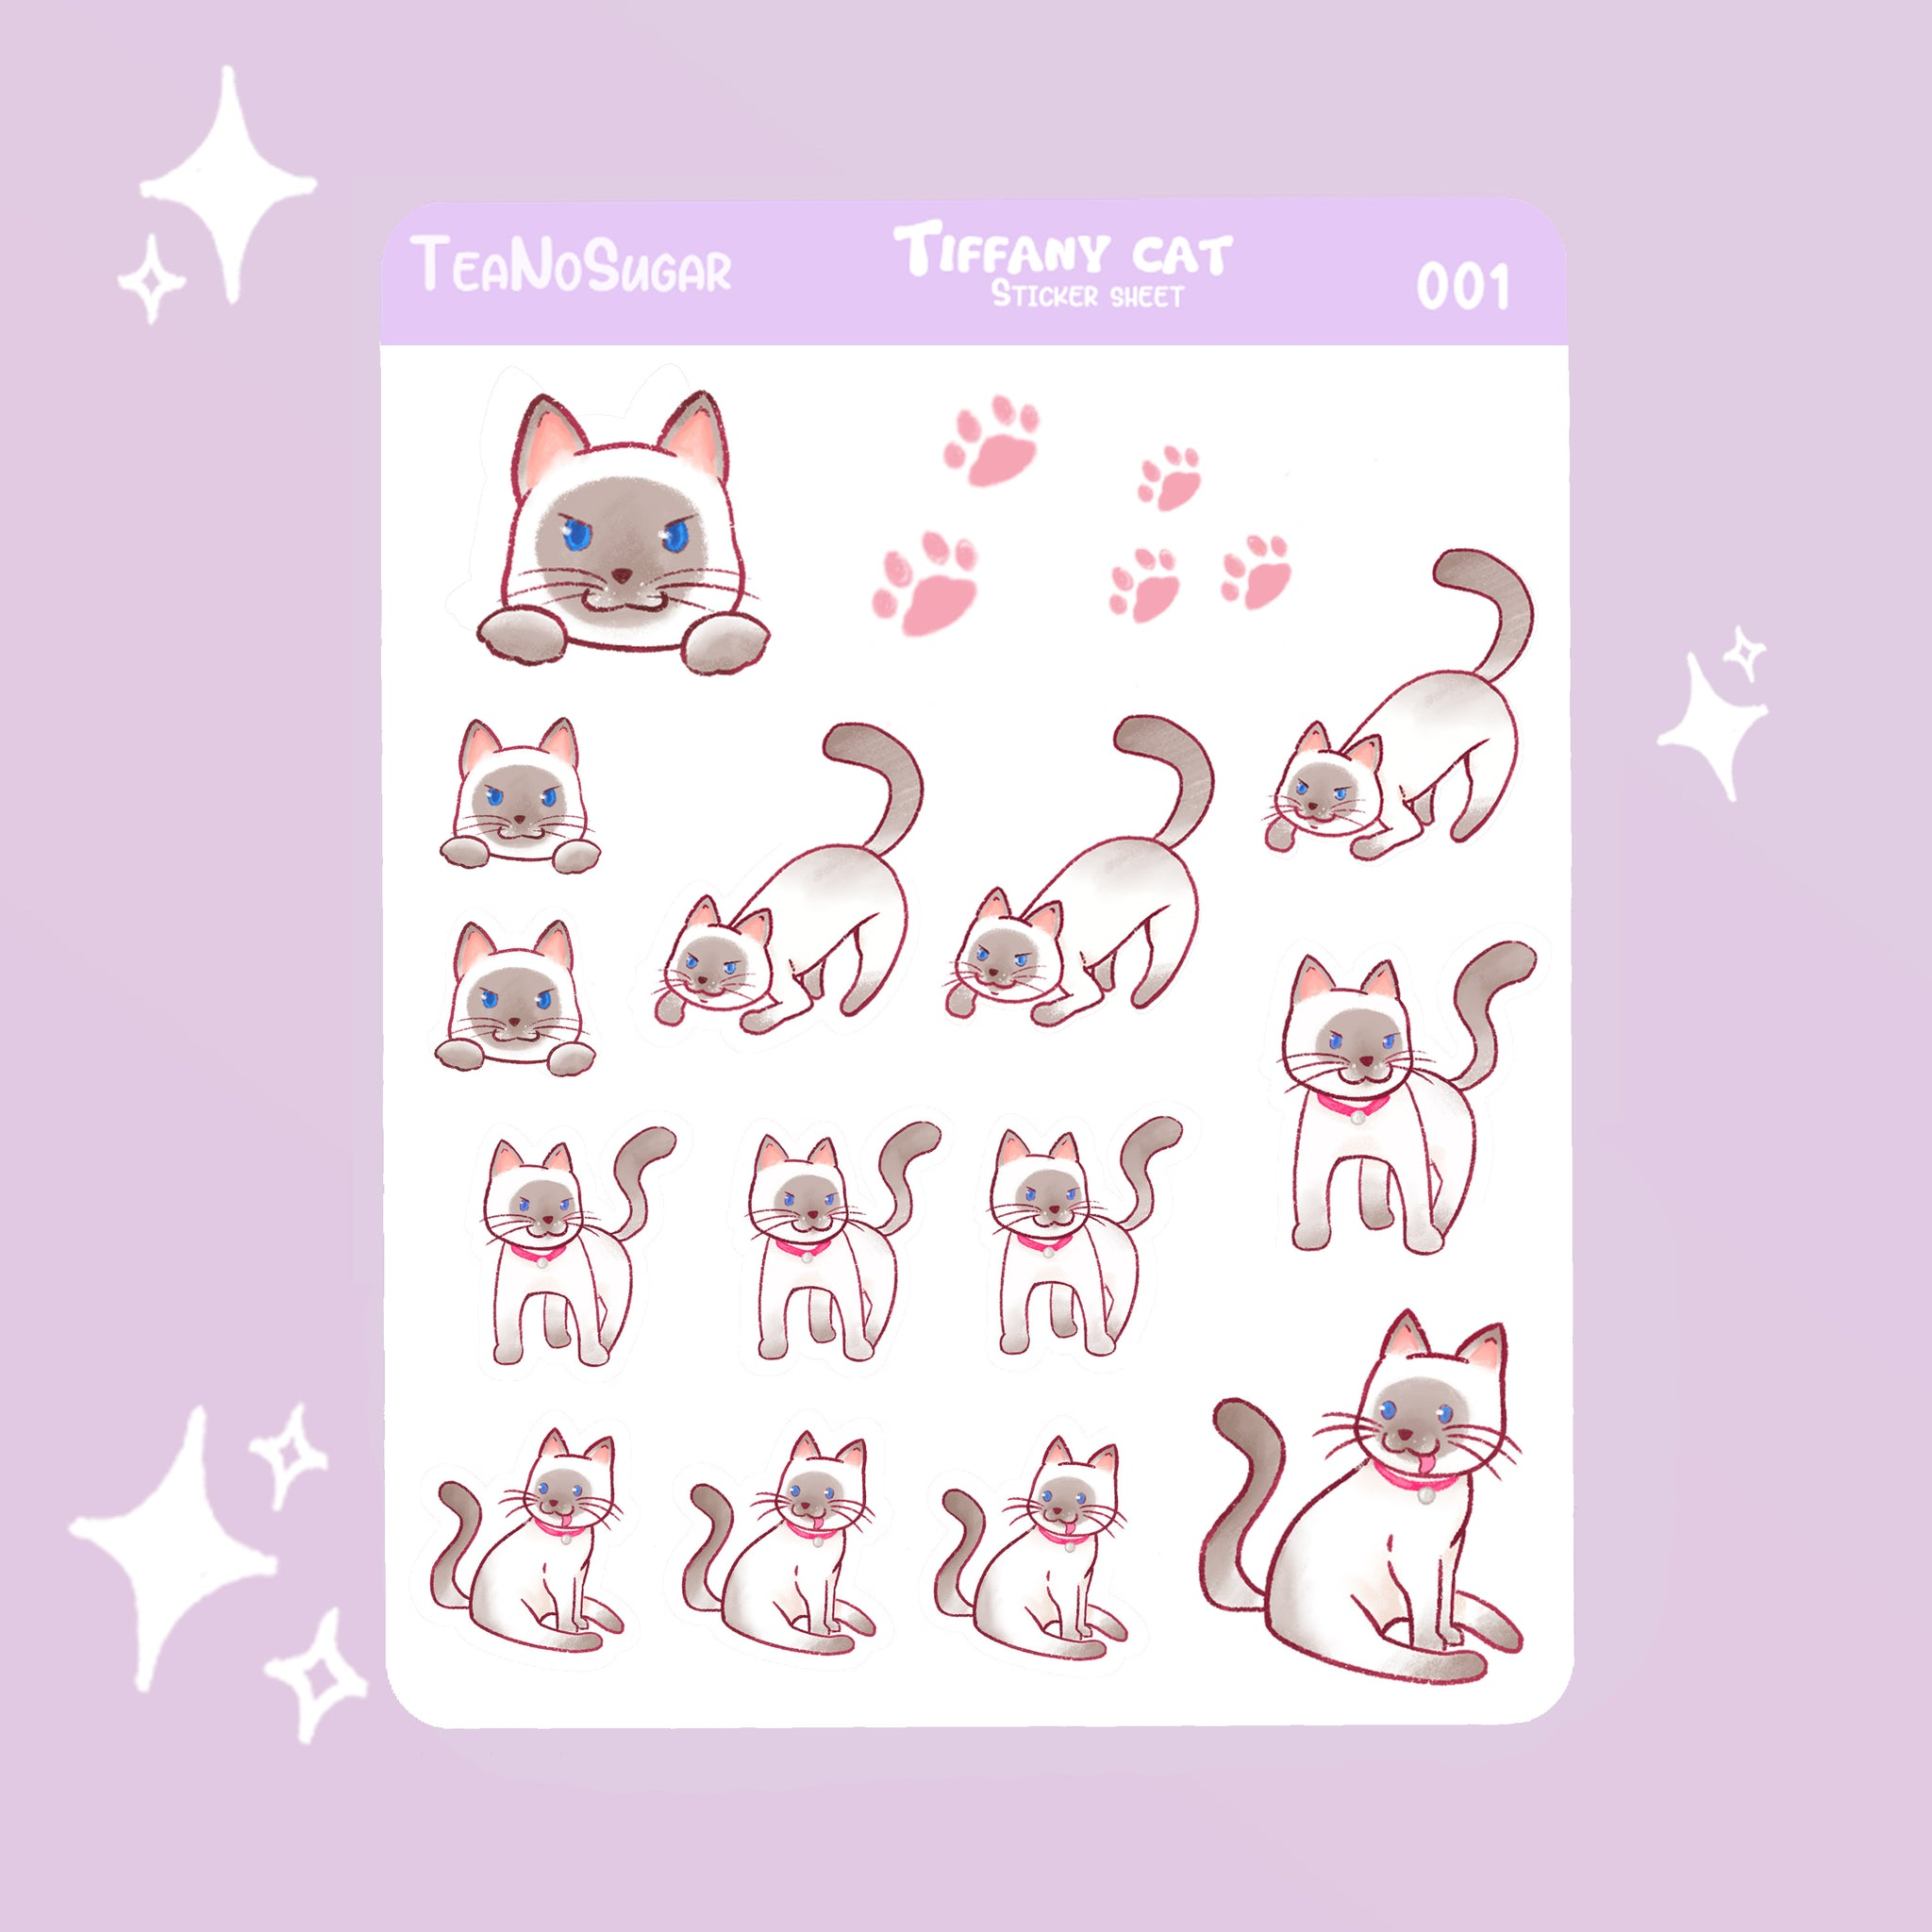 Tiffany cat stickers